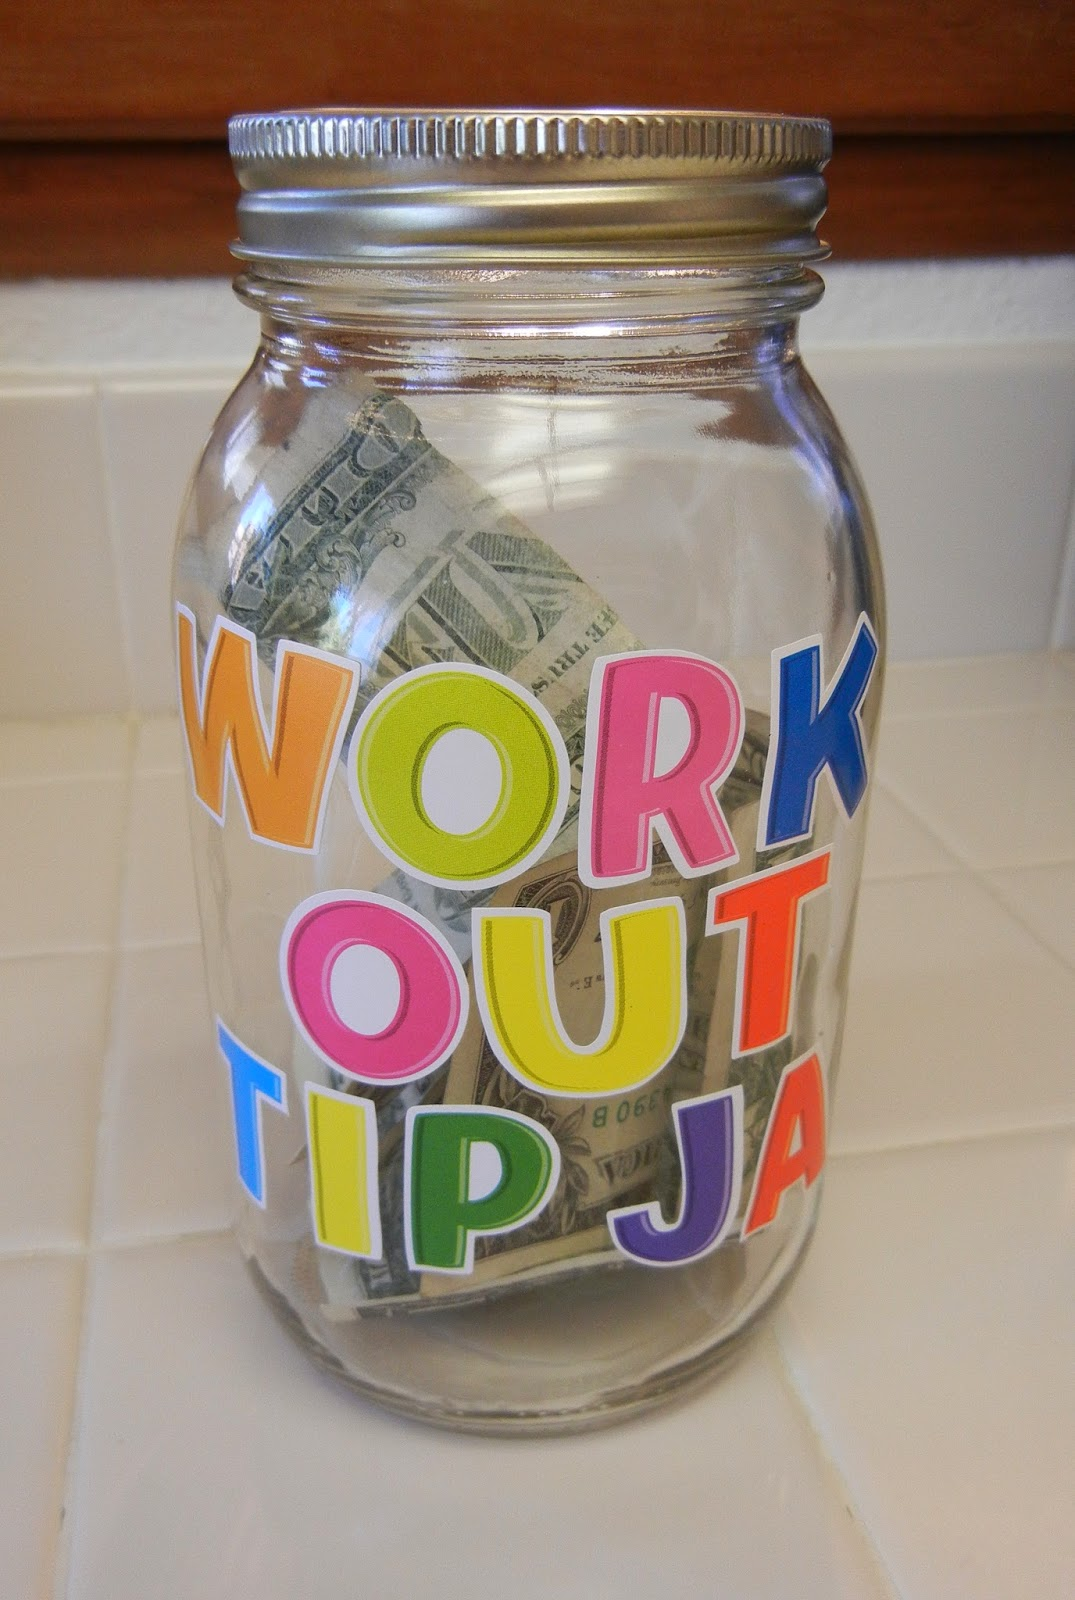 Work+Out+Tip+Jar Weight Loss Recipes Work Out Tip Jar